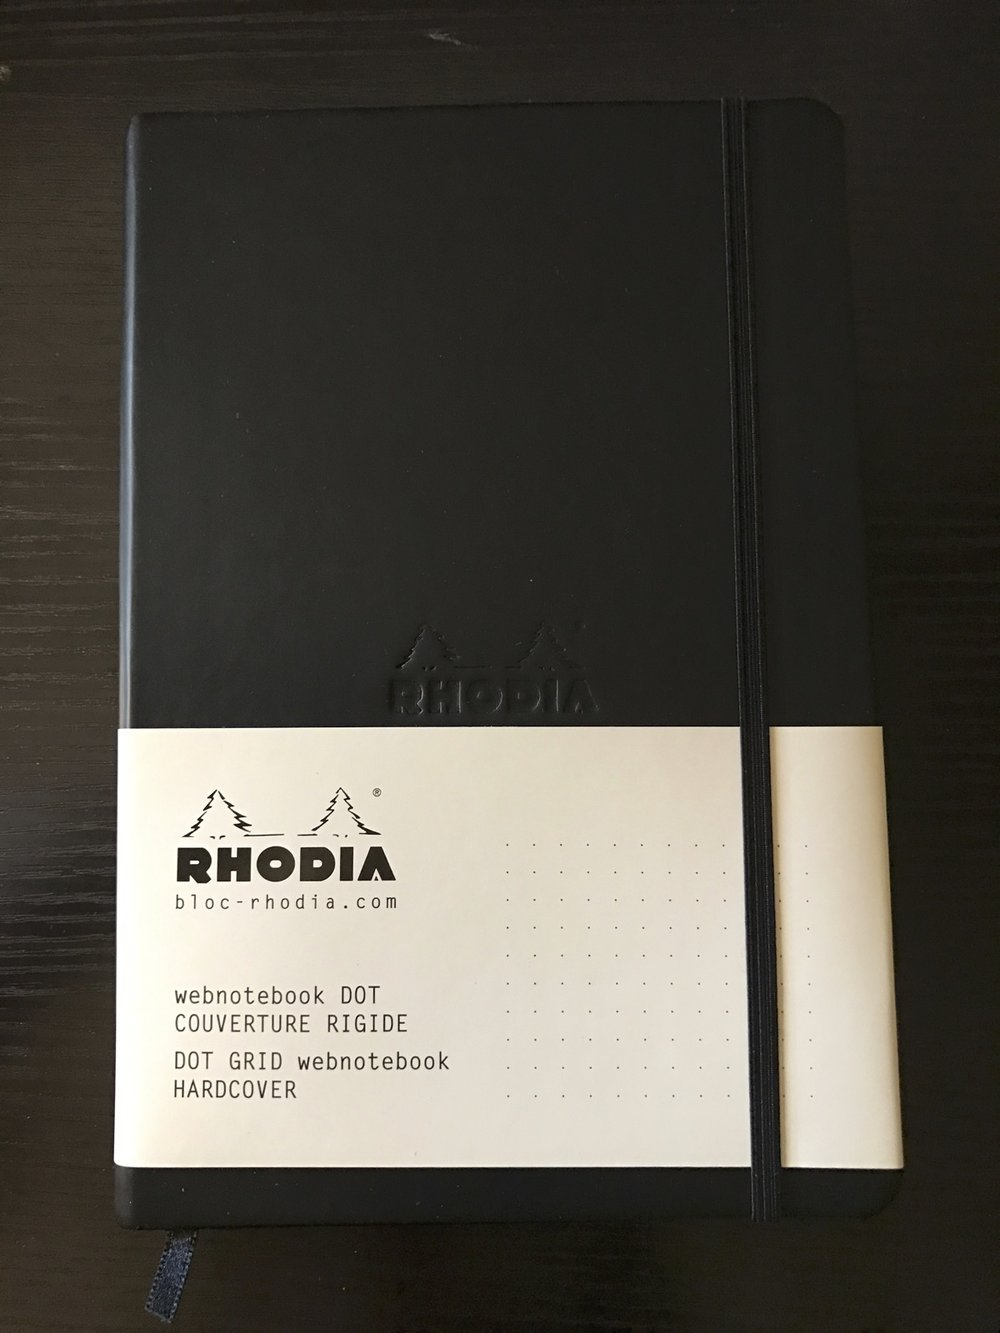 The Rhodia Webnotebook has a pleasant leather-like hardcover.